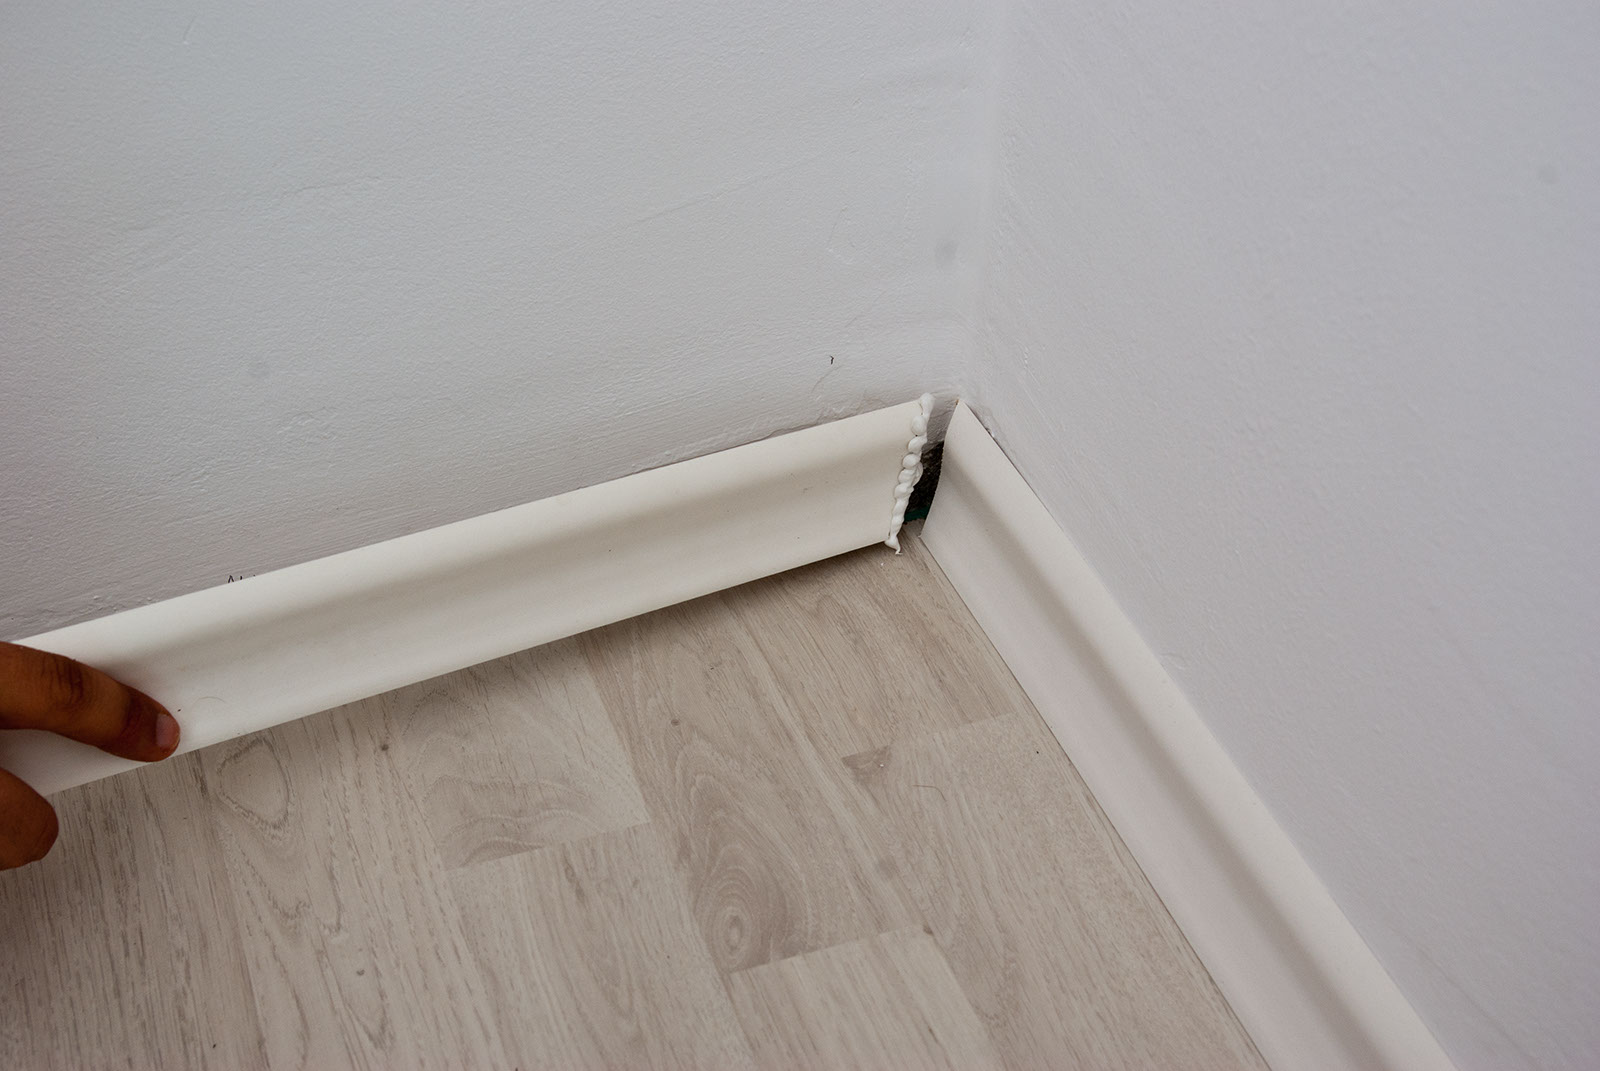 How To Install Baseboard Trim HowToSpecialist